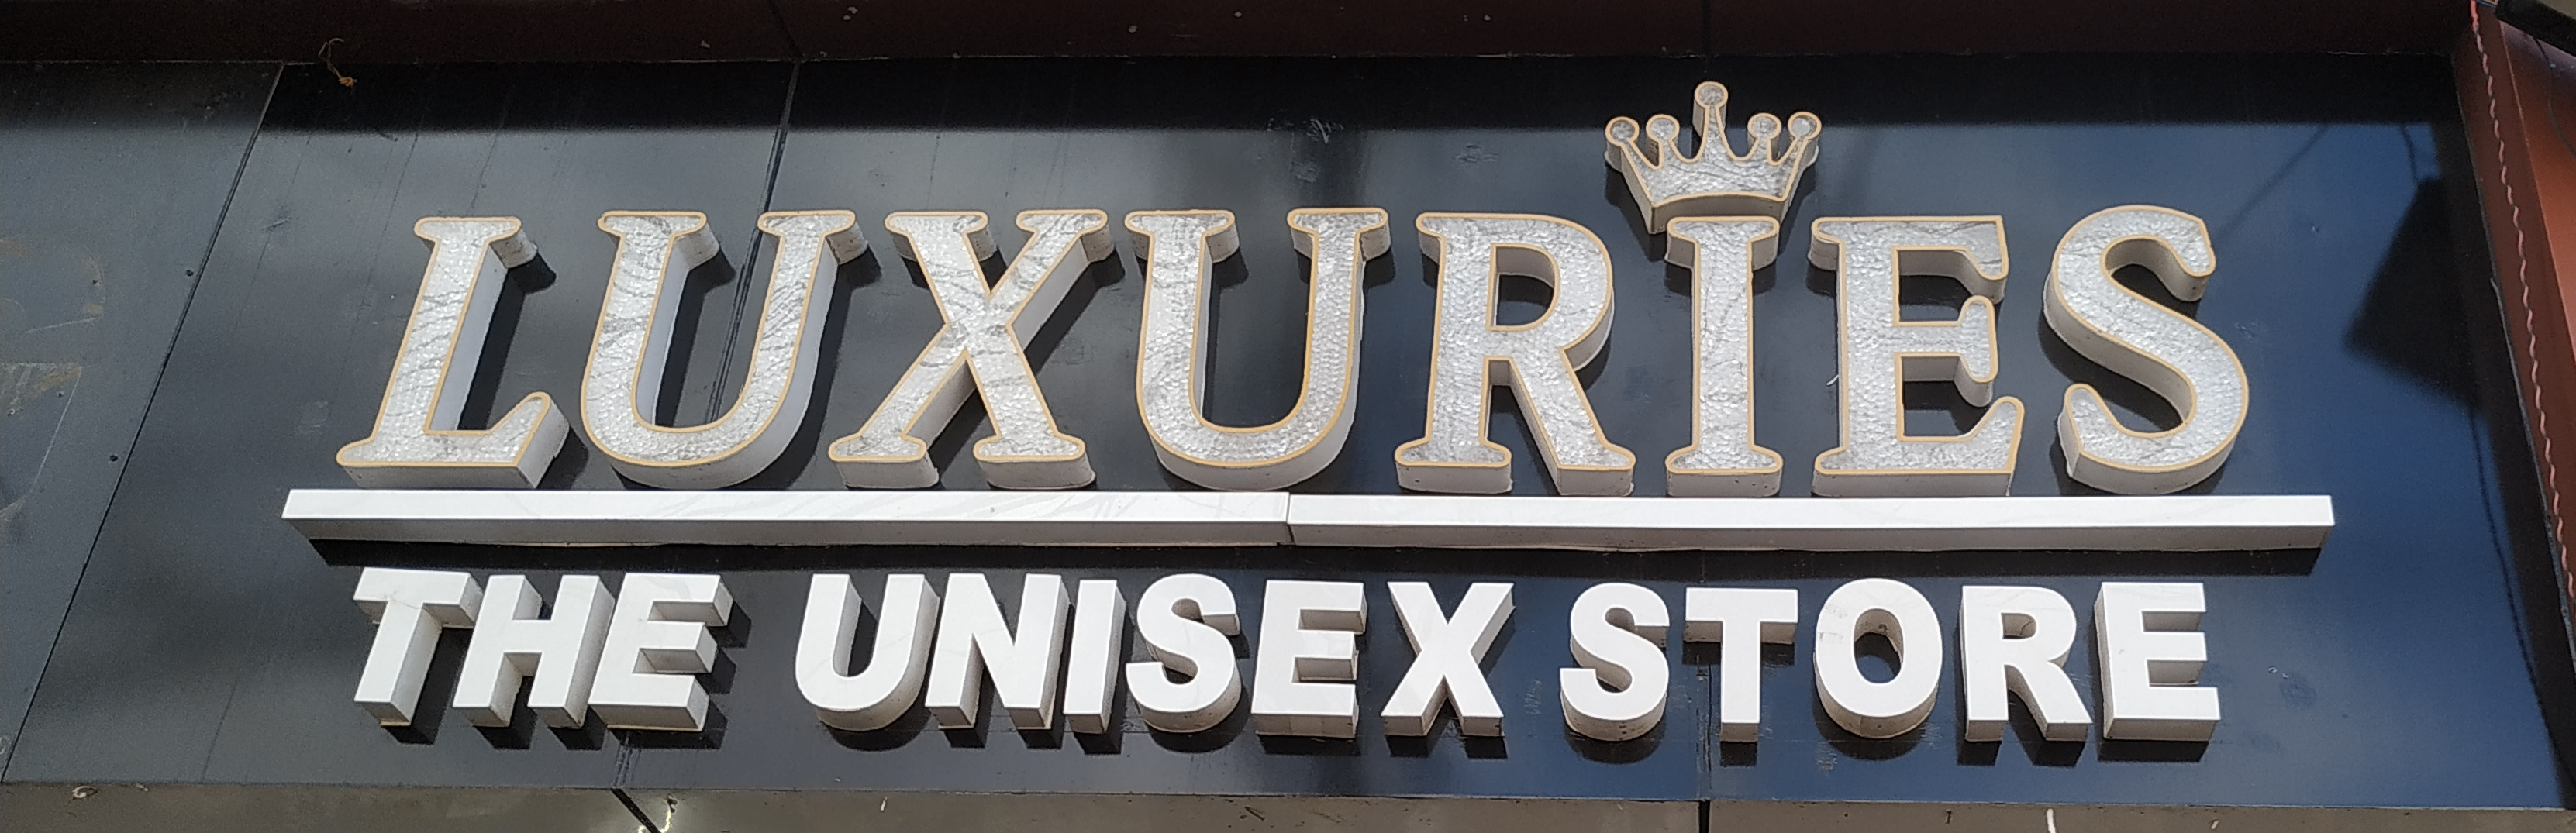 Luxuries the unisex store